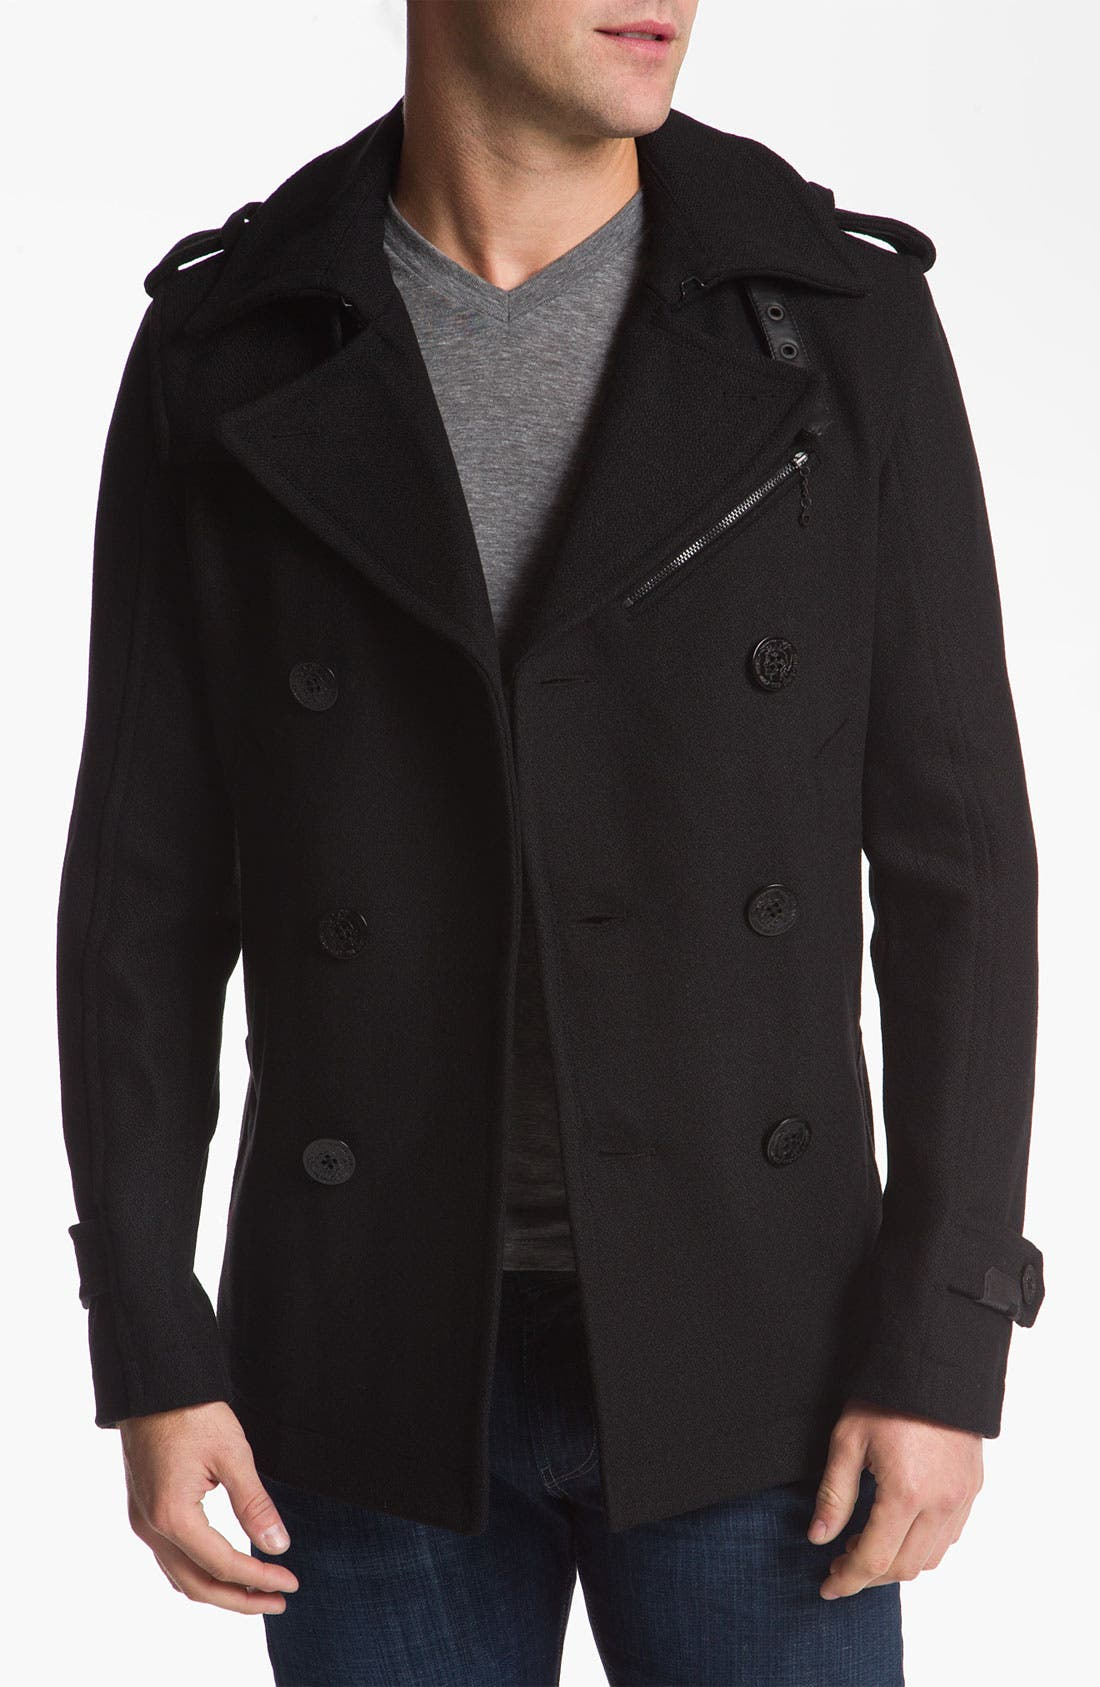 Alternate Image 1 Selected - DIESEL® 'Wittory' Double Breasted Peacoat